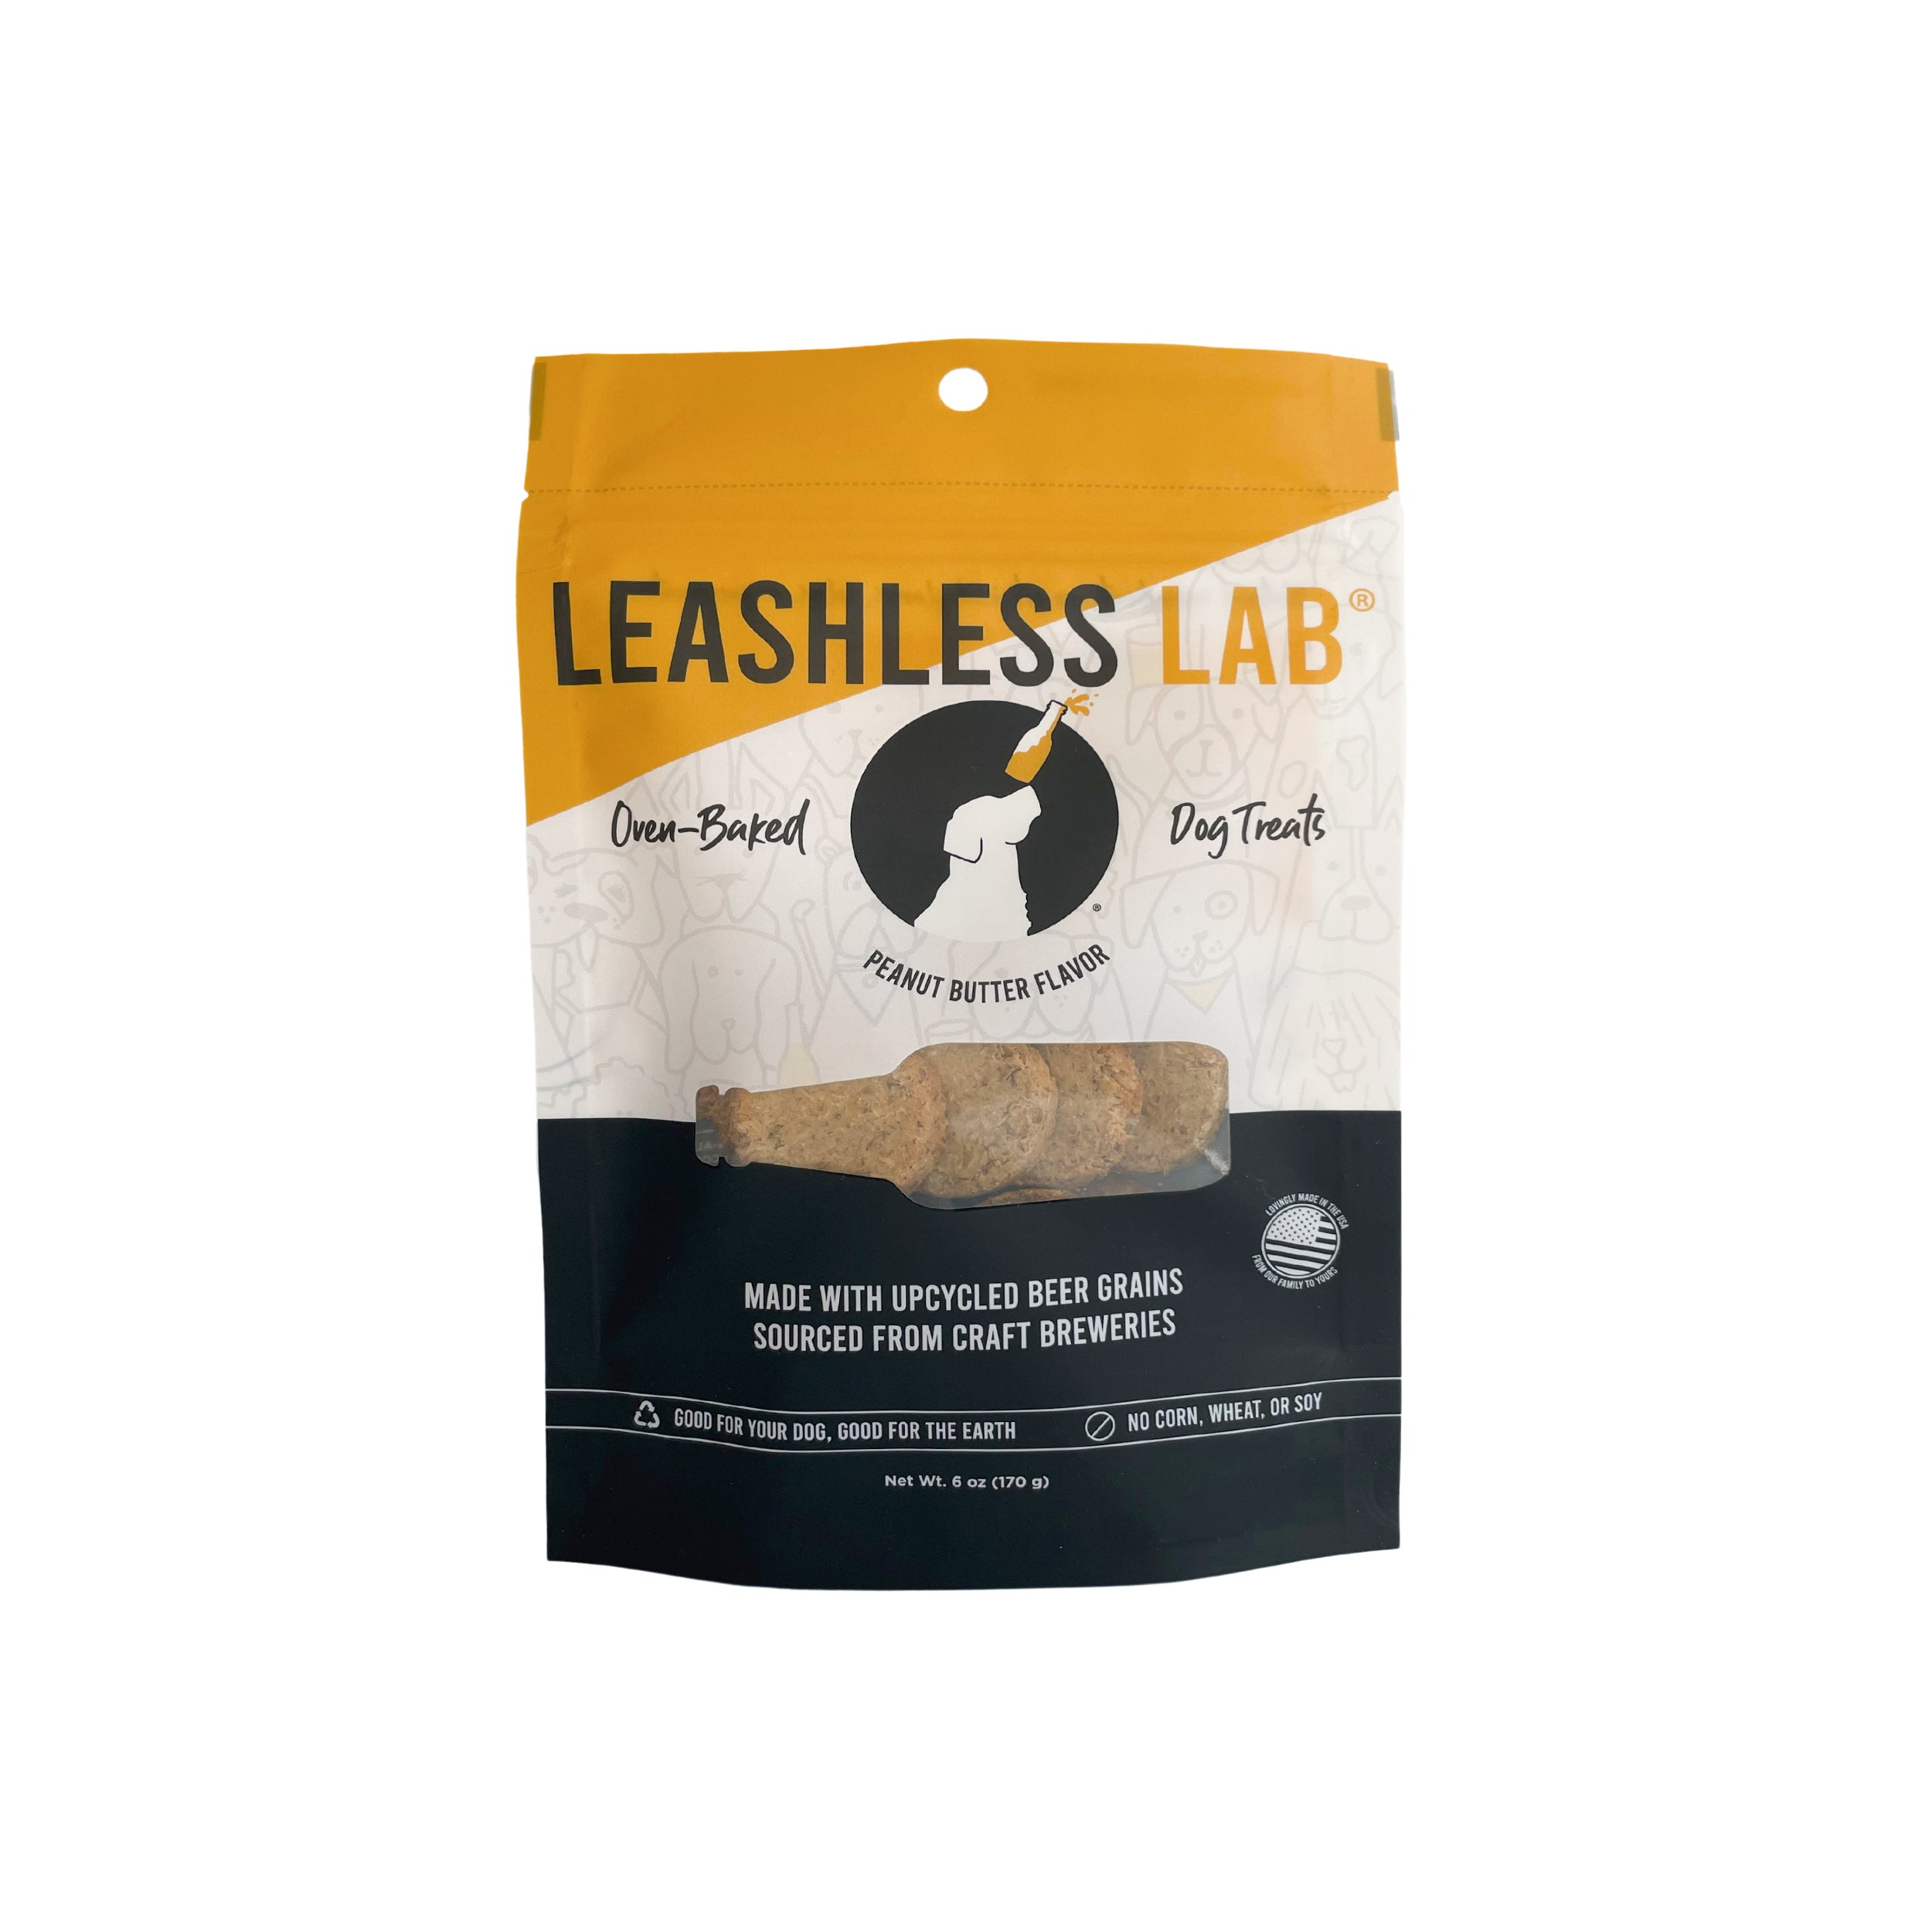 Leashless Lab Beer Grain Dog Treats